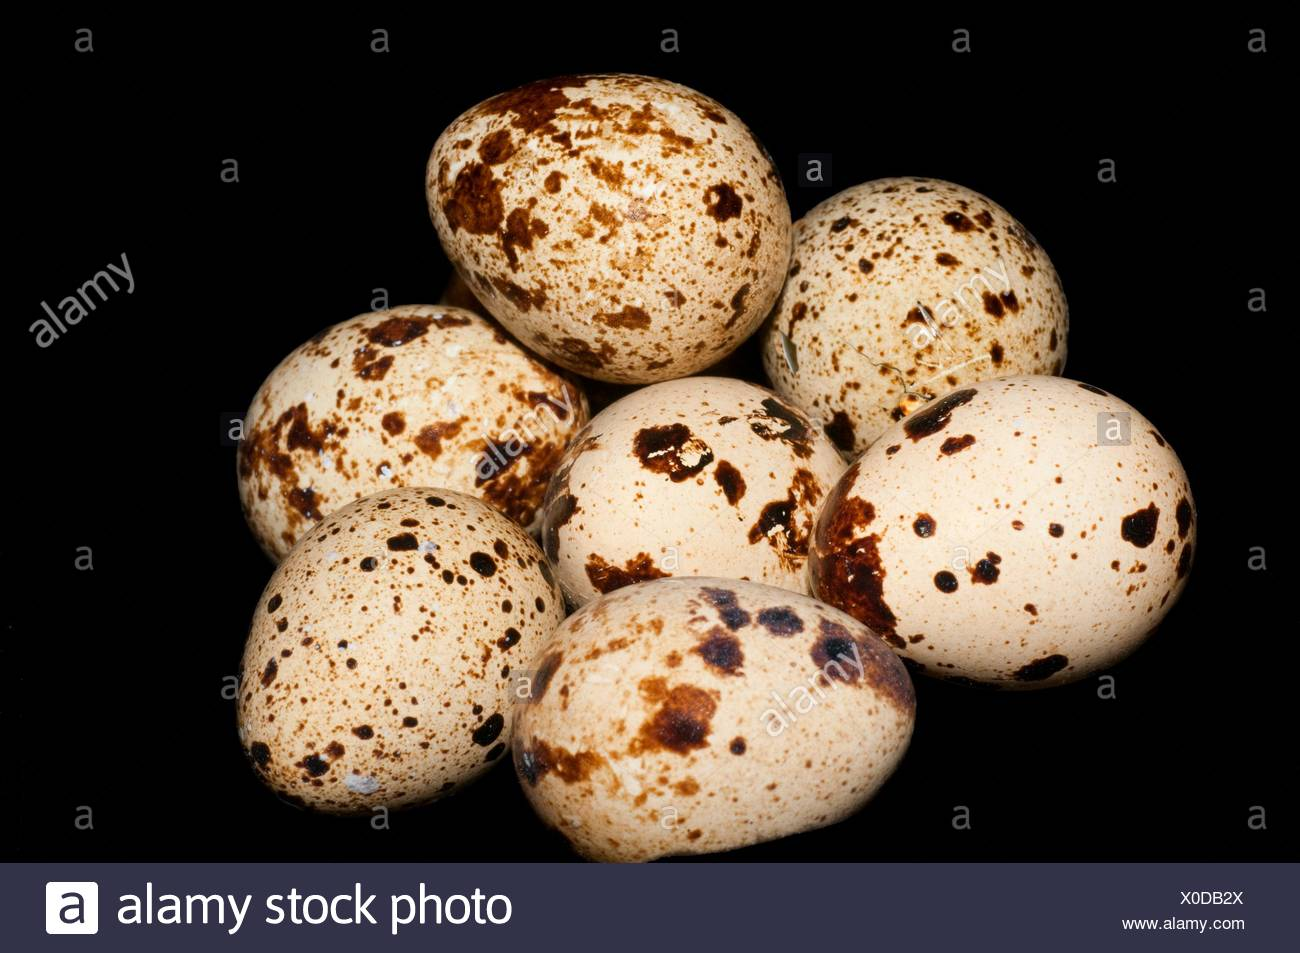 Quail eggs. - Stock Image